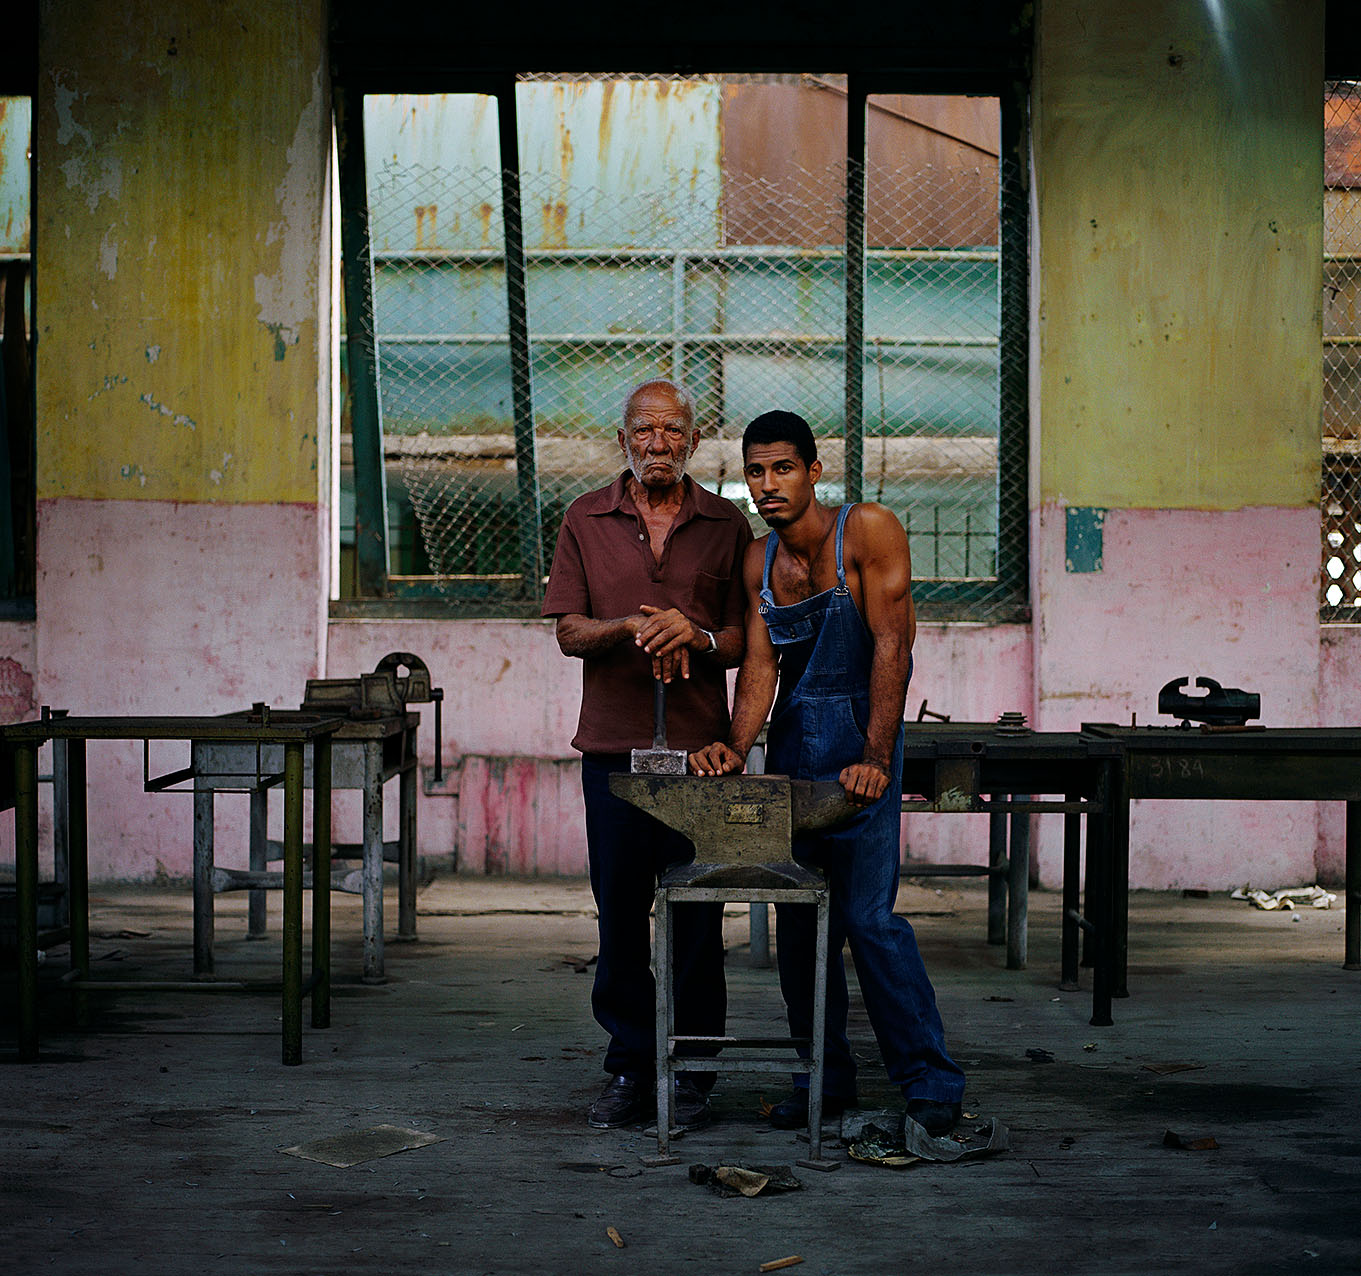 Cuba-Factory Old Man sharp0.5 1276px 08